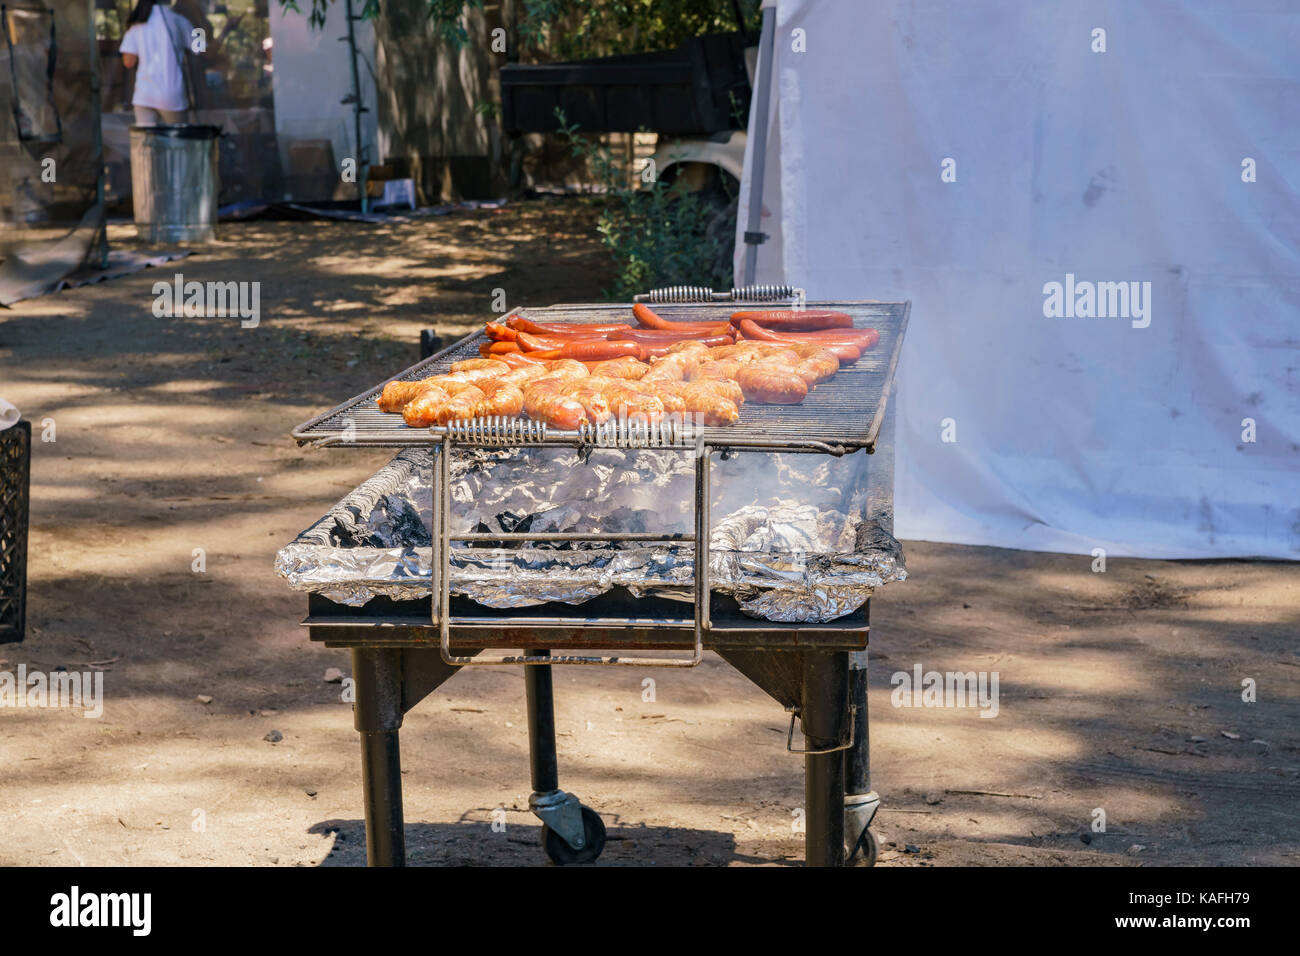 Grill Sausage of Lavender Festival of 123 Farm at San Bernardino, Los Angeles County, United States - Stock Image